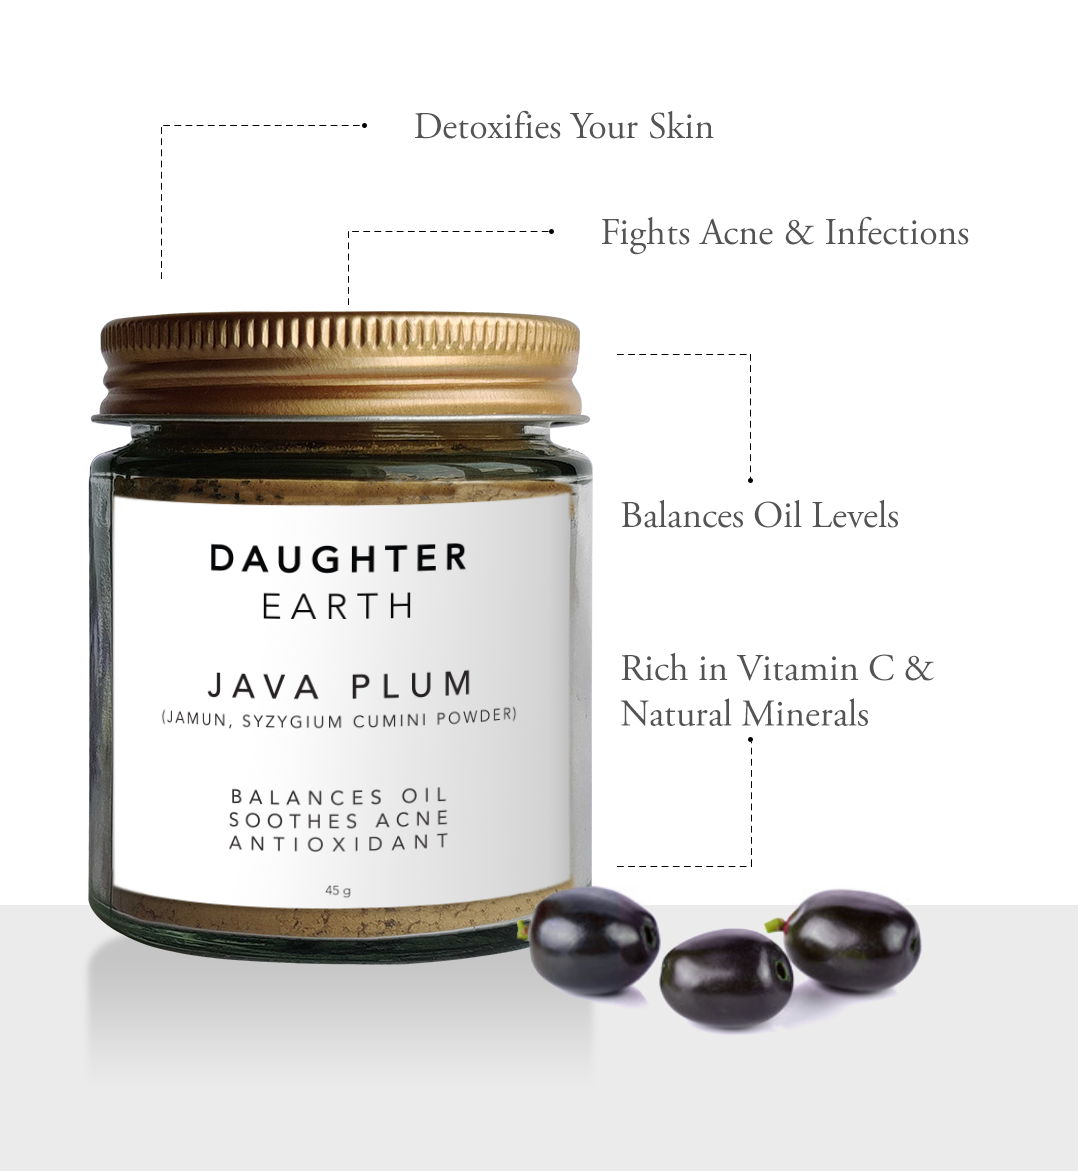 Wild Java Plum Ayurvedic Face Mask